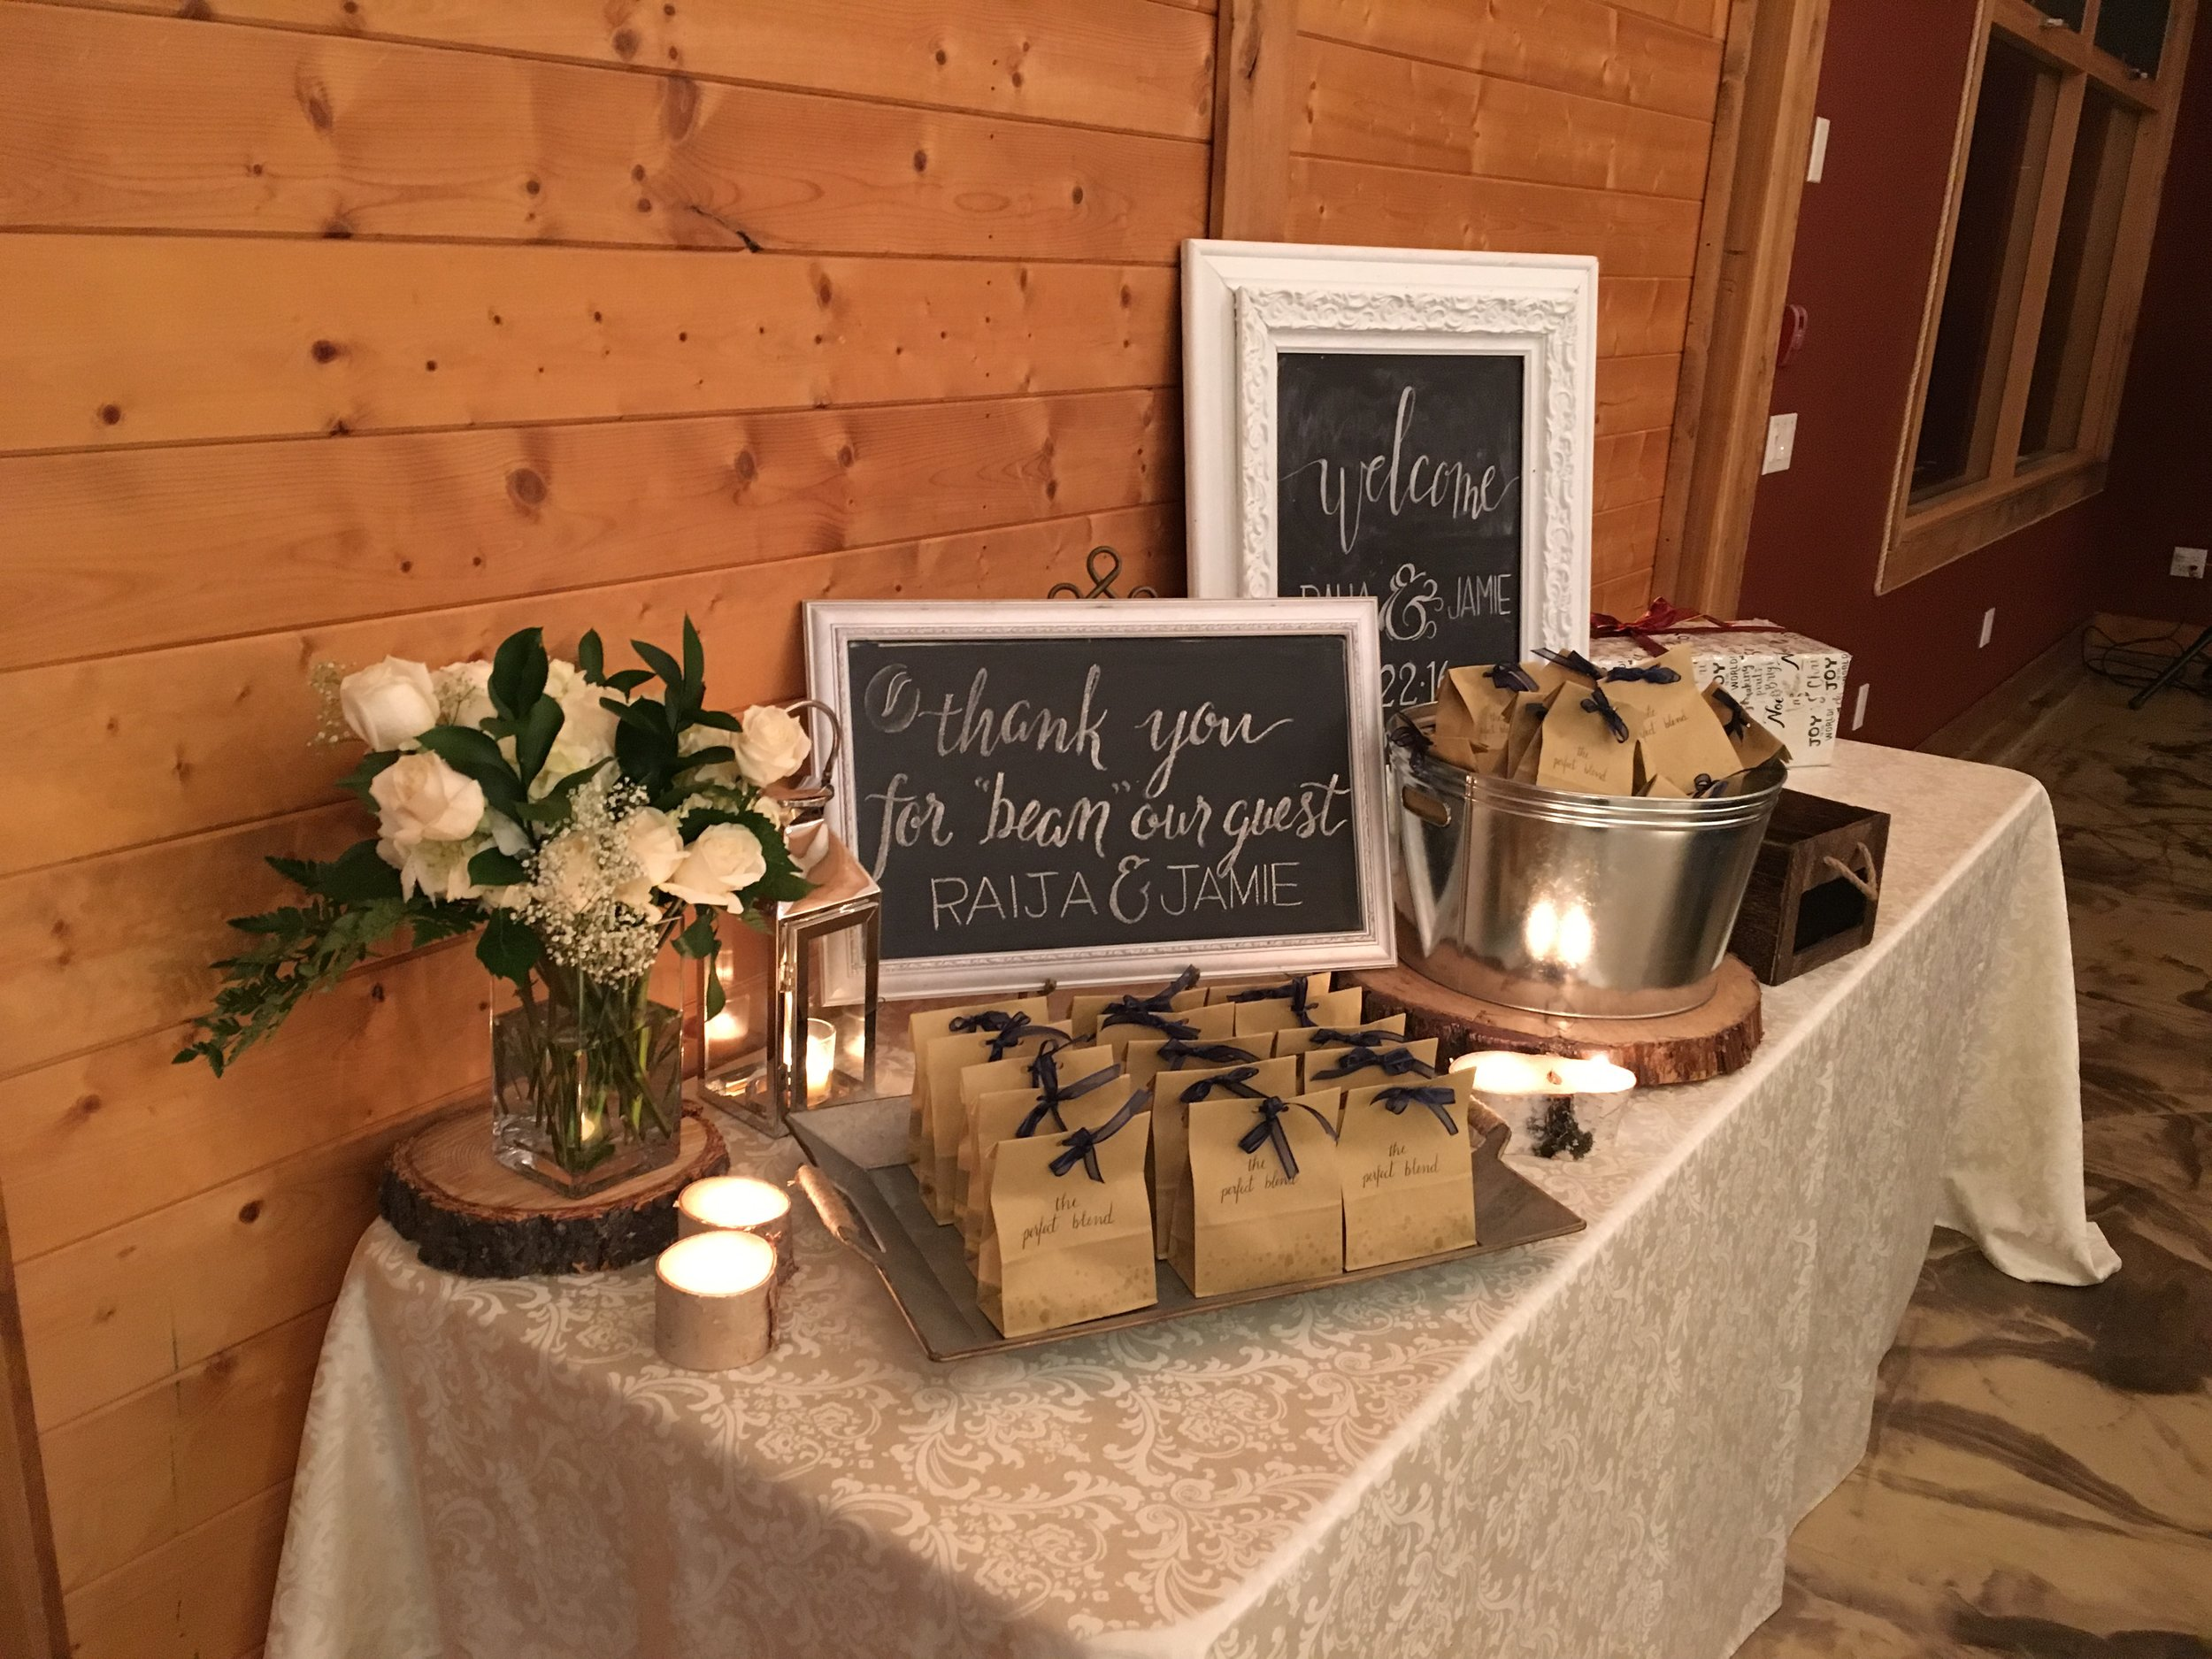 "The bride incorporated her love of coffee into the day with a bag of fresh coffee beans for each guest to take home, ""Thank you for 'bean' our guest""."